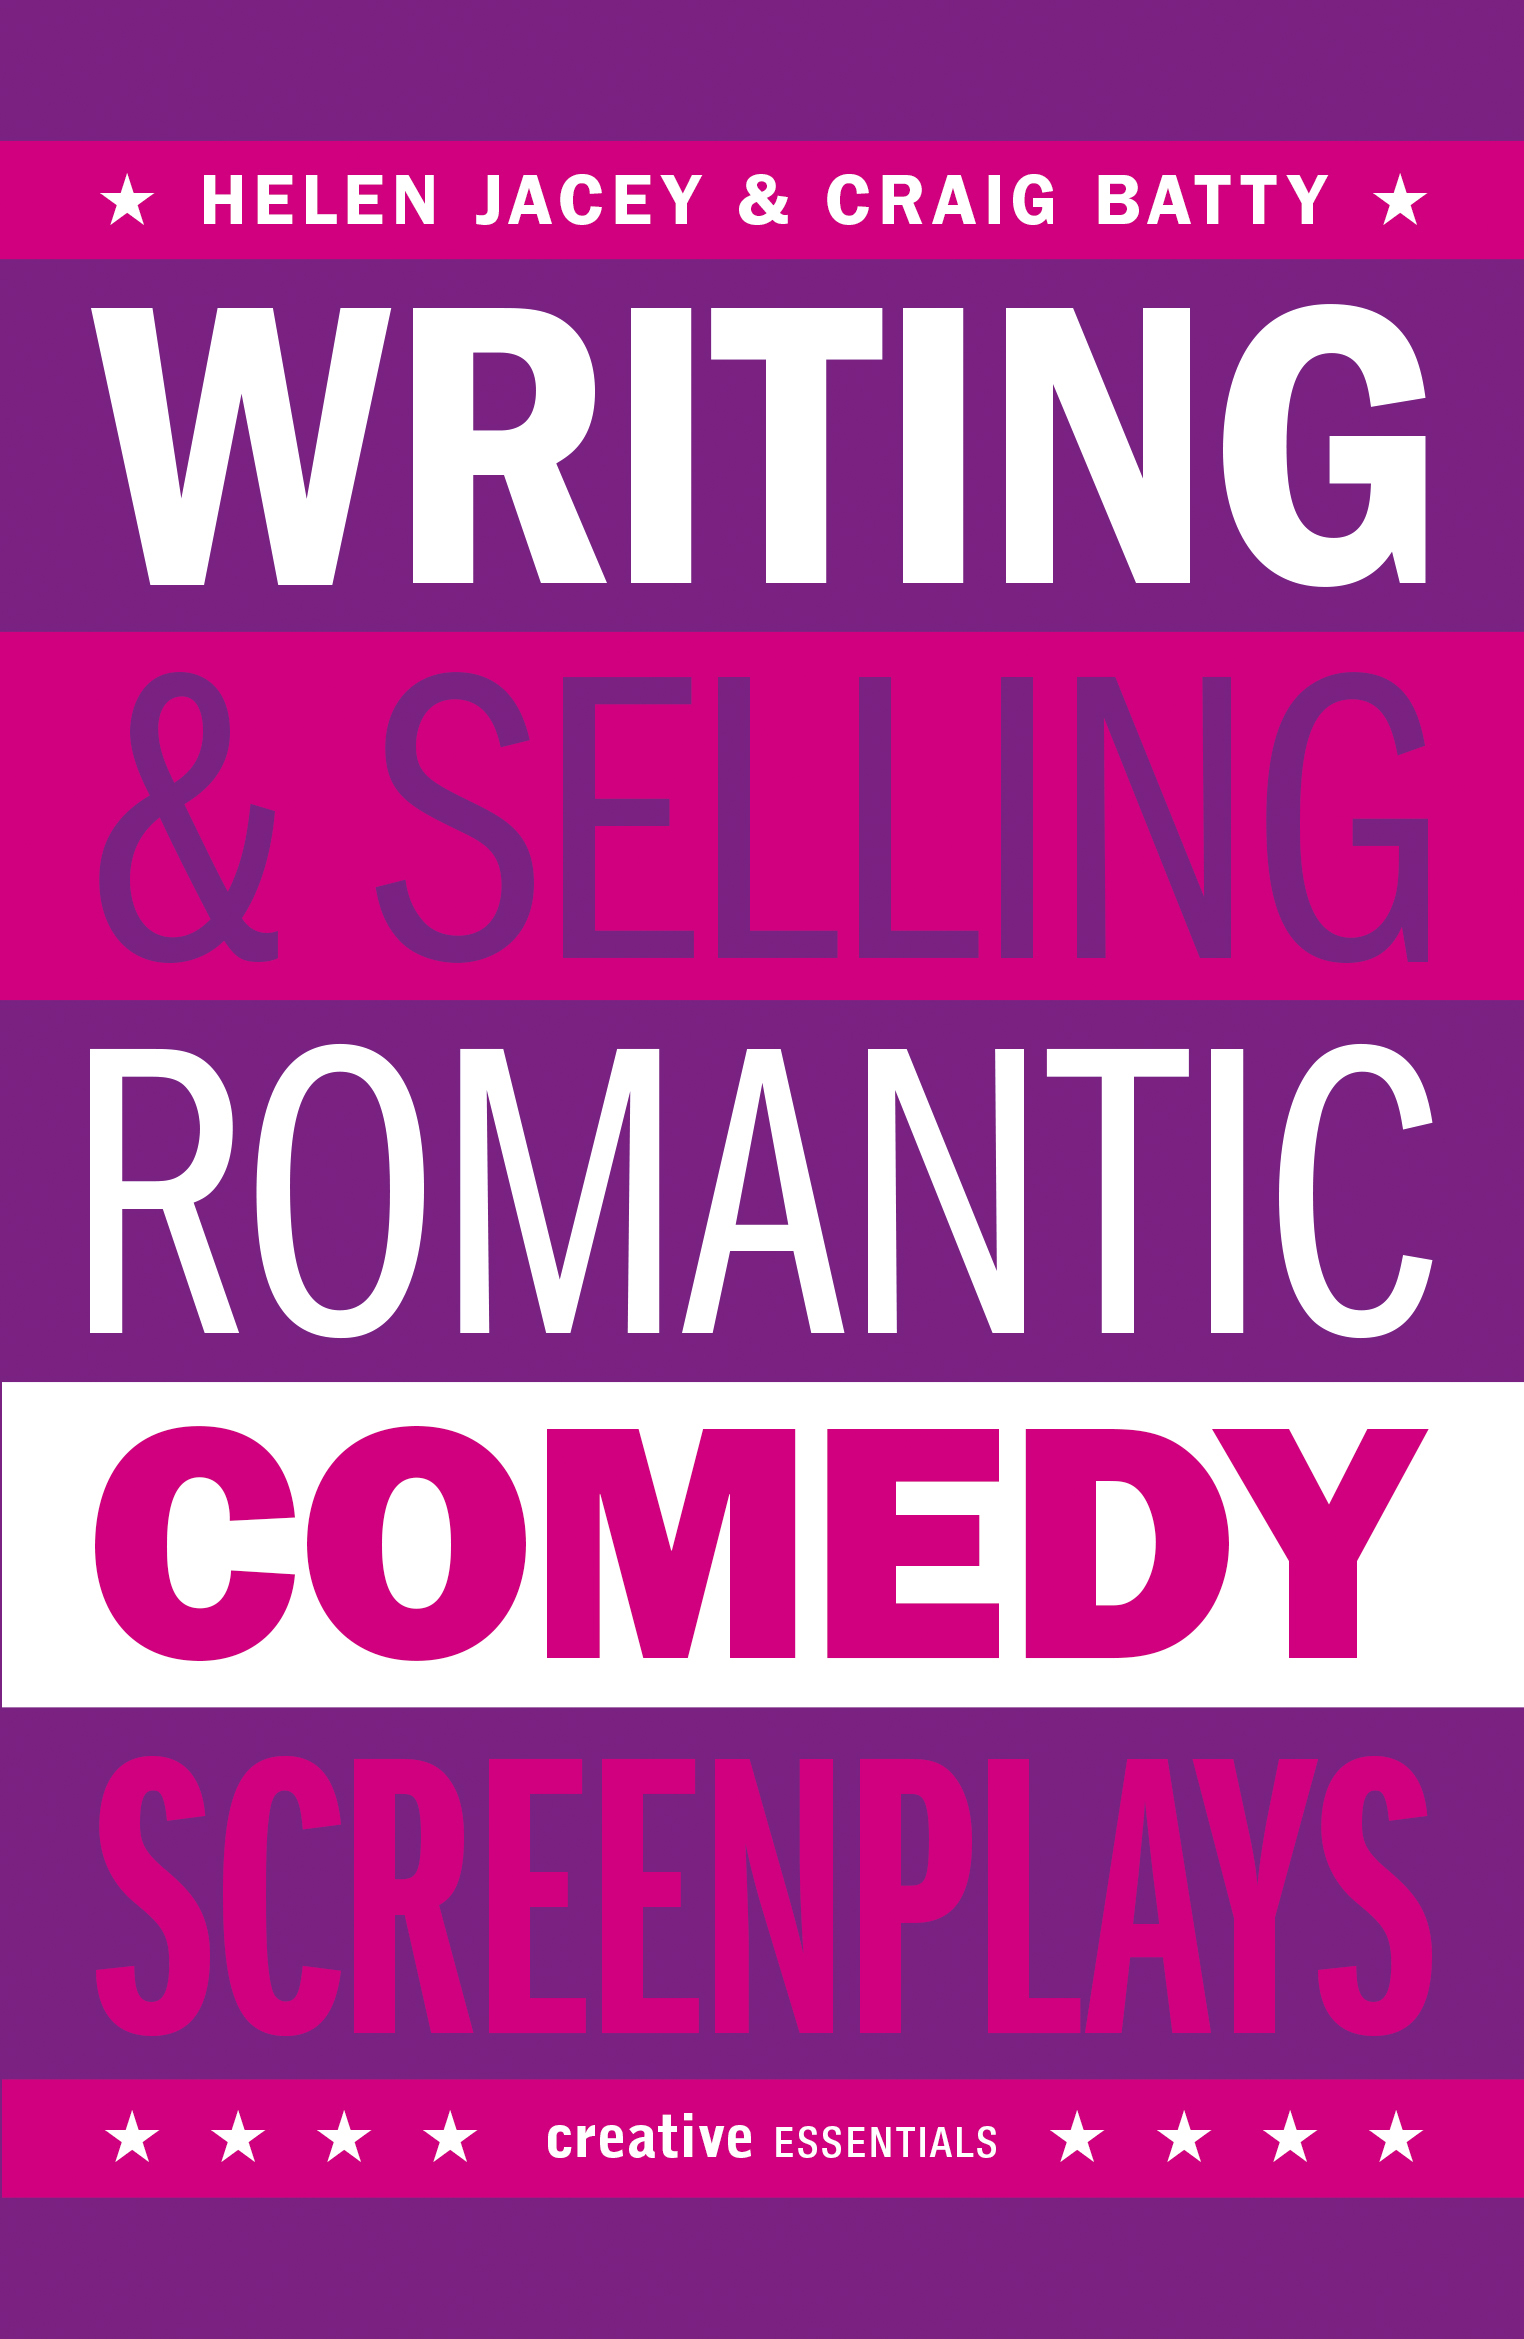 Writing & Selling Romantic Comedy Screenplays by Helen Jacey and Craig  Batty larger image ▷